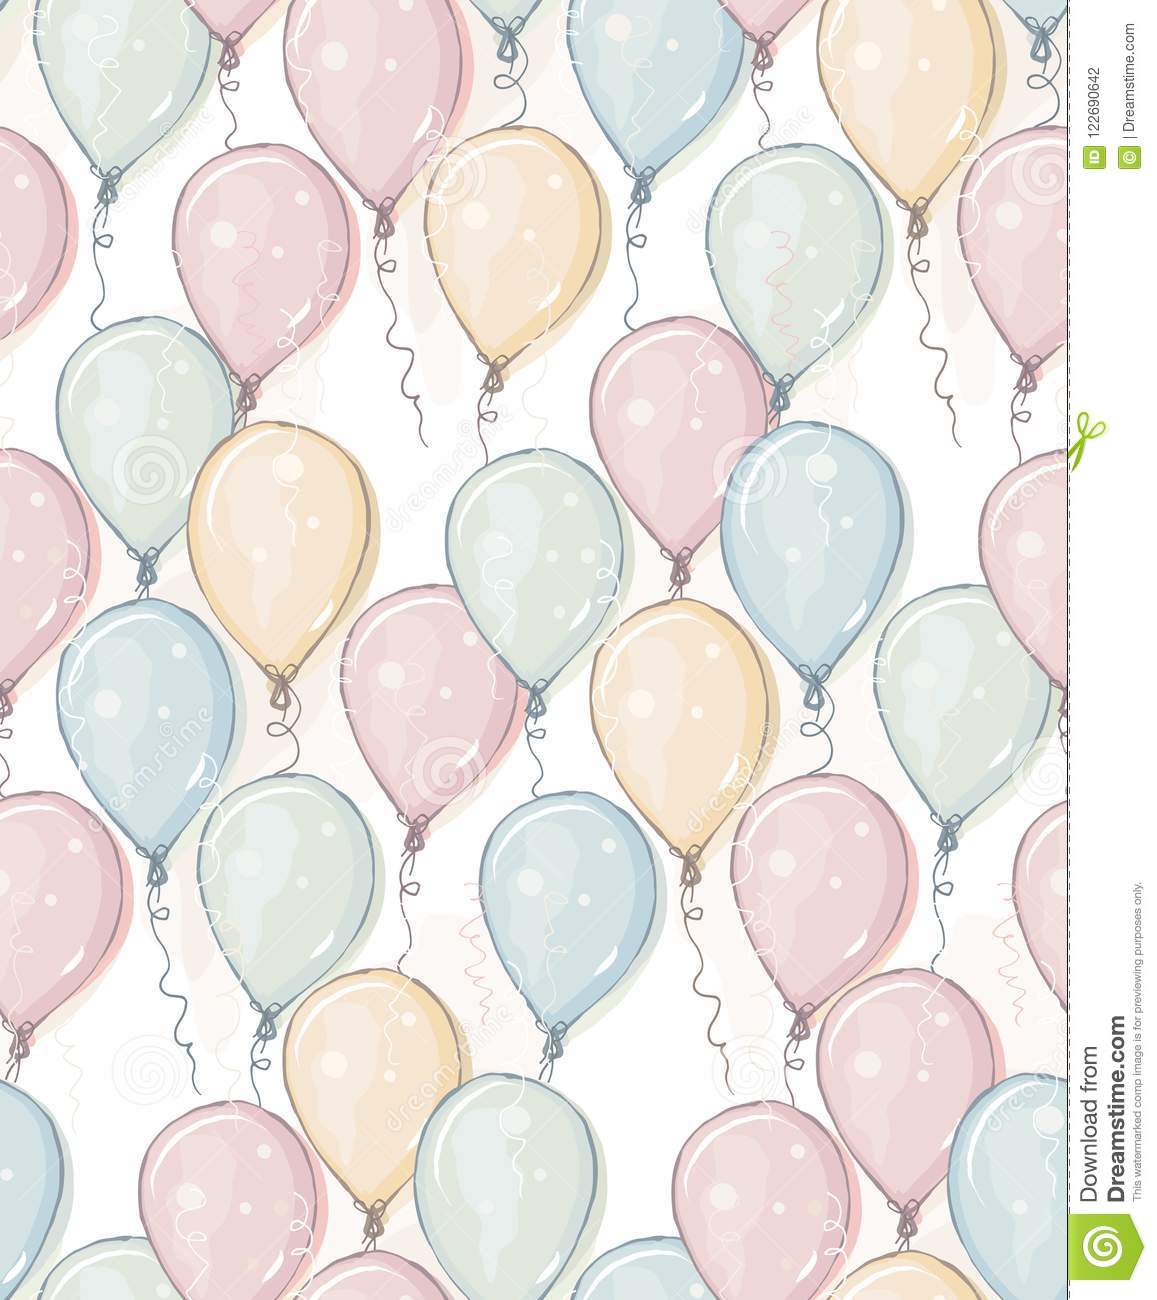 Hand Drawn Balloons Vector Pattern. Pastel Colors. Watercolor Style Design. Flying Balloons. Pink, Blue, Yellow and Gree Mint Ball